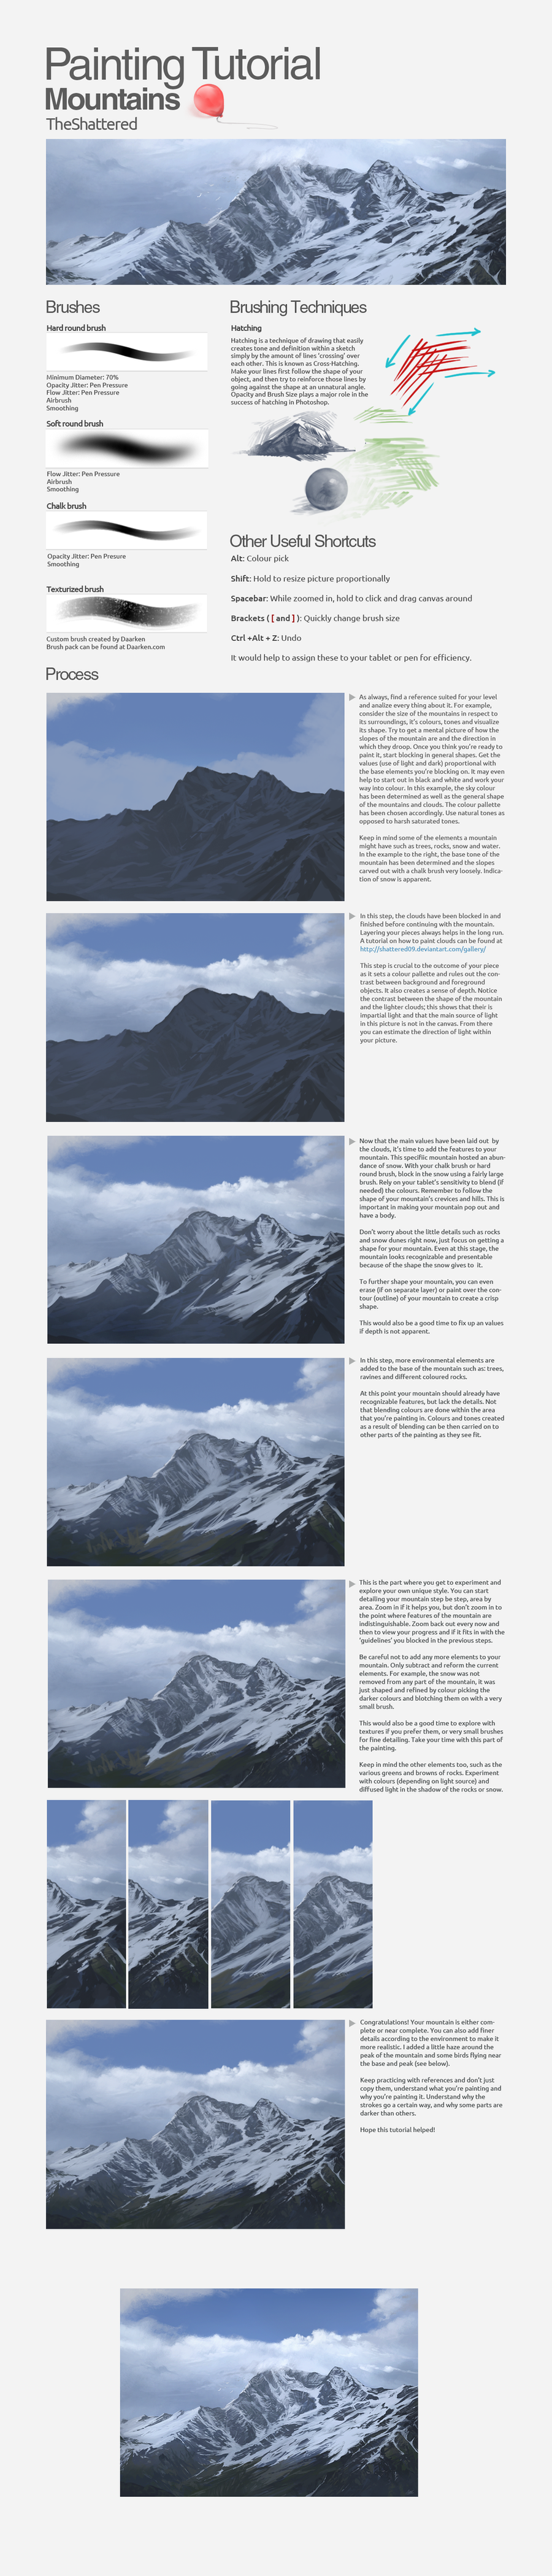 Mountains tutorial by Shattered09